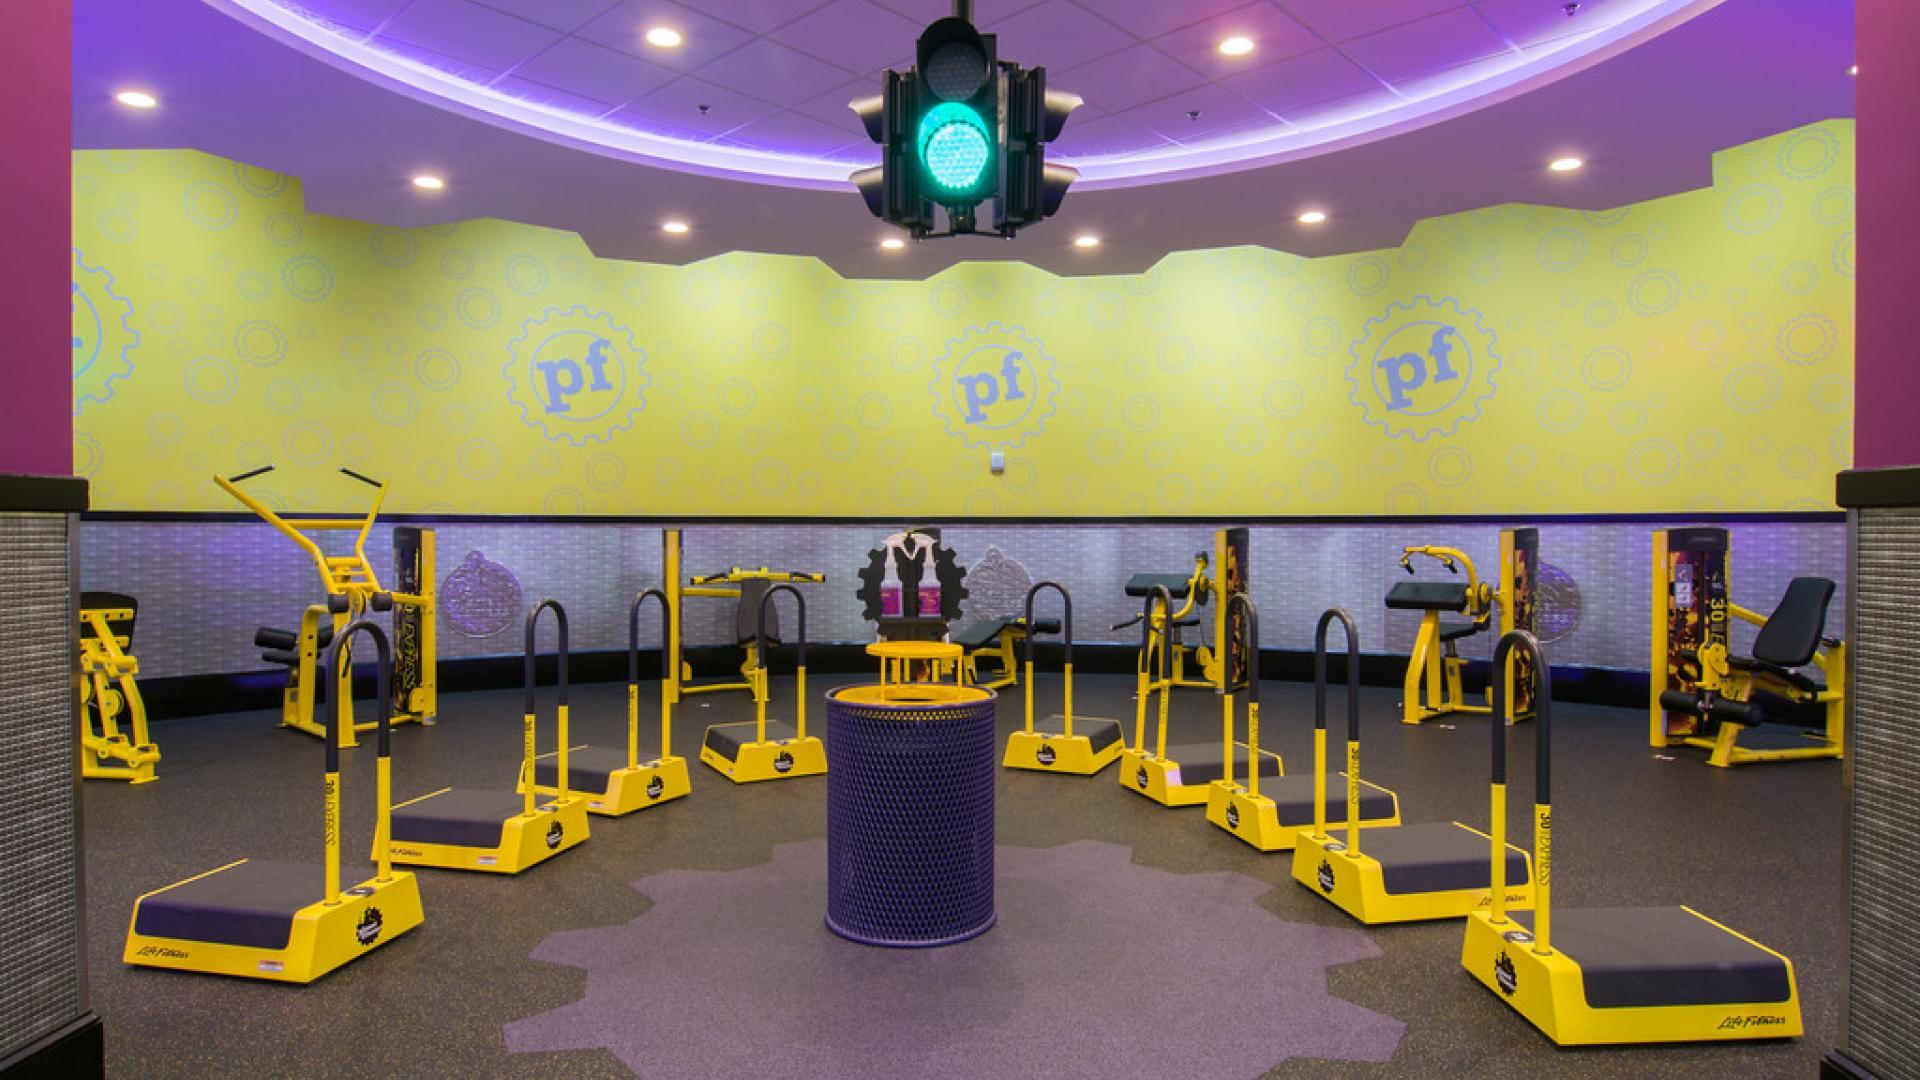 Fry S. reccomend Planet fitness savannah georgia